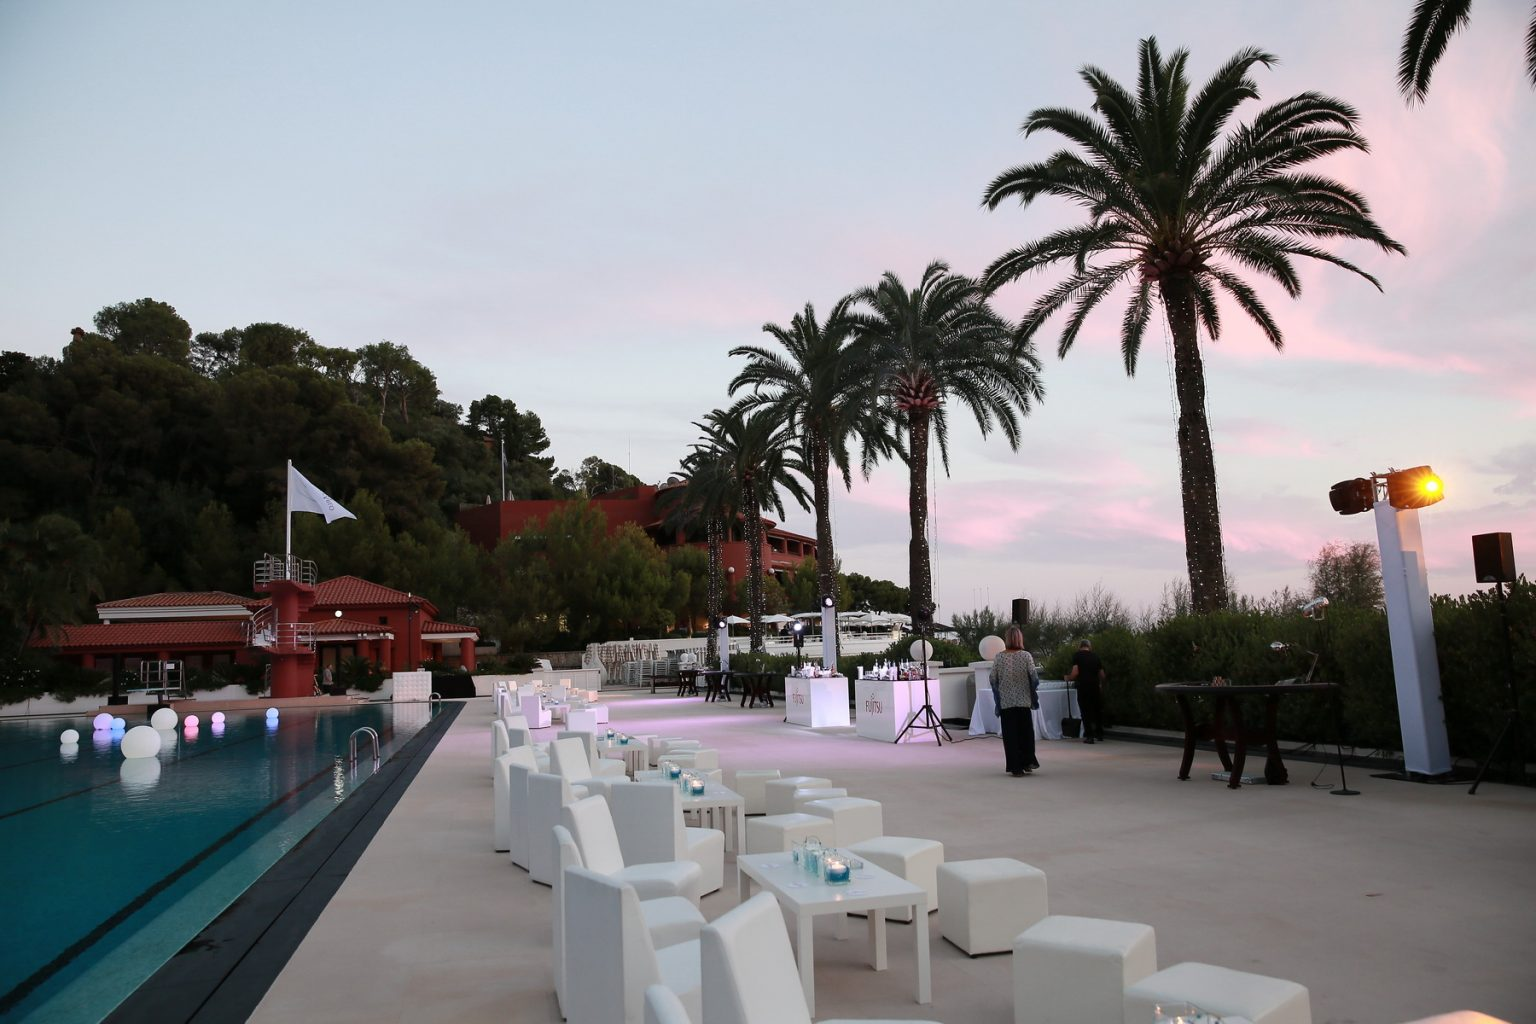 Le Deck Monte Carlo Pool Evening 4 - Le Deck Monte Carlo Pool Evening